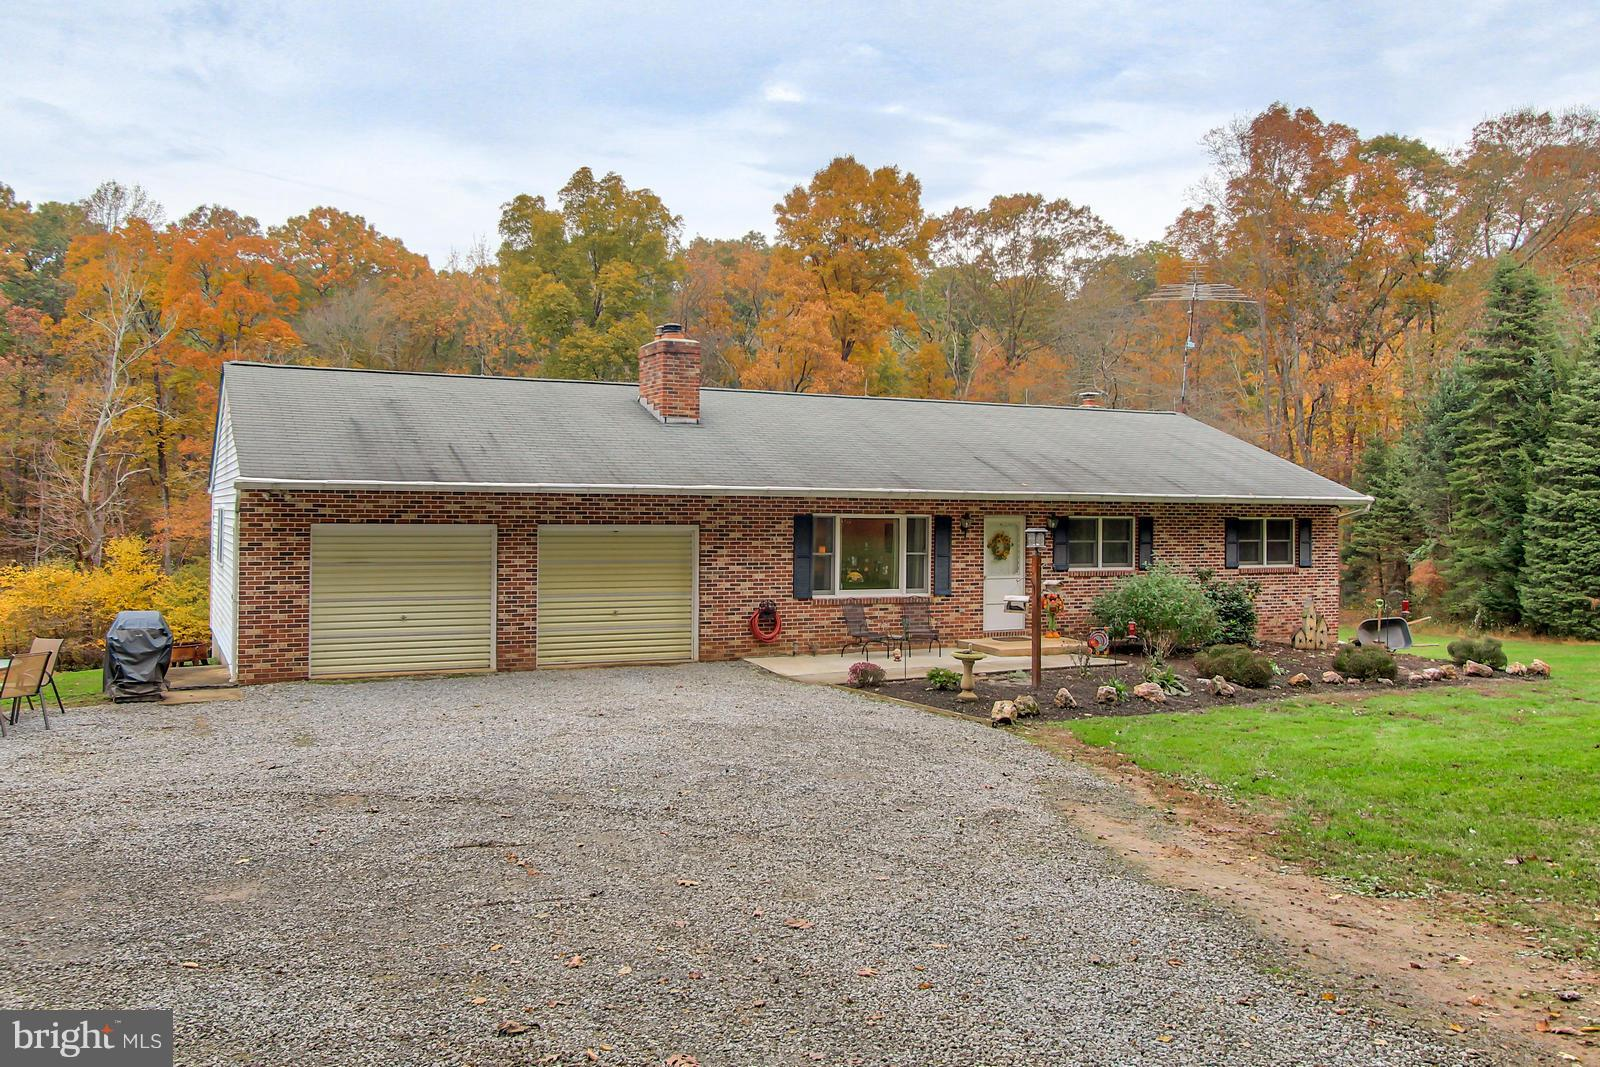 347 W RICHARDSON ROAD, AIRVILLE, PA 17302